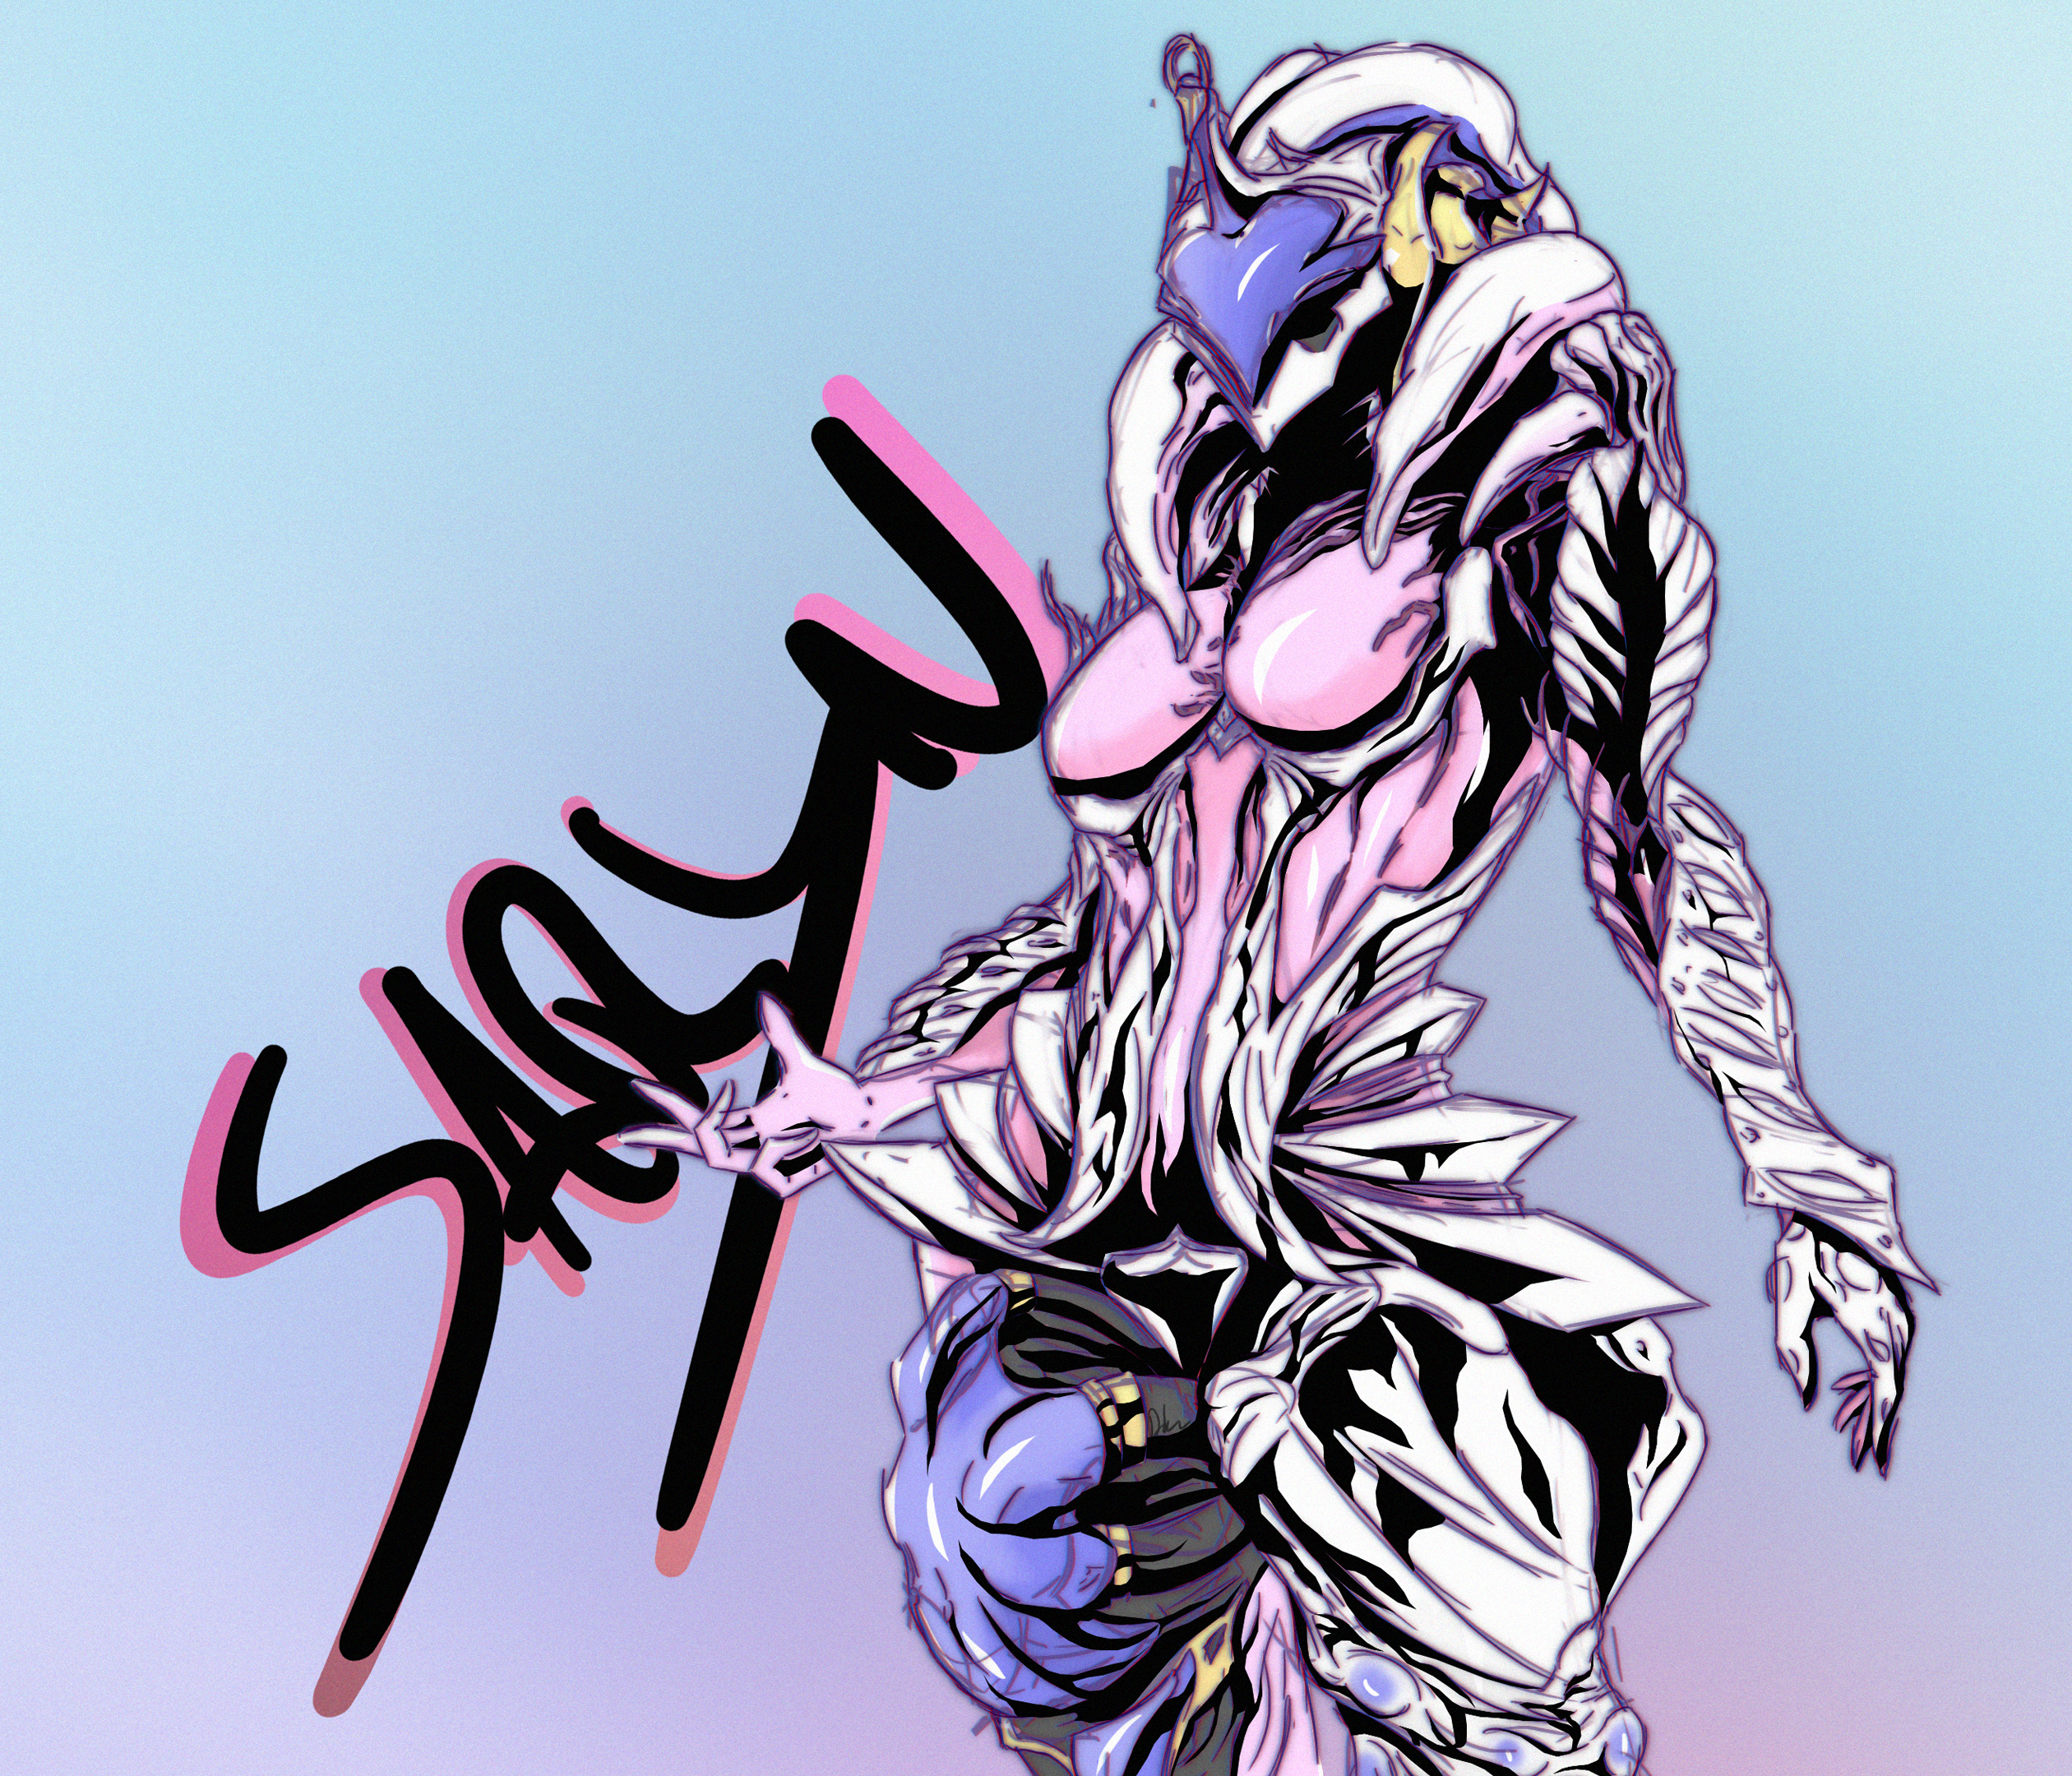 warframe__saryn_by_aorical-dcfso4g.png